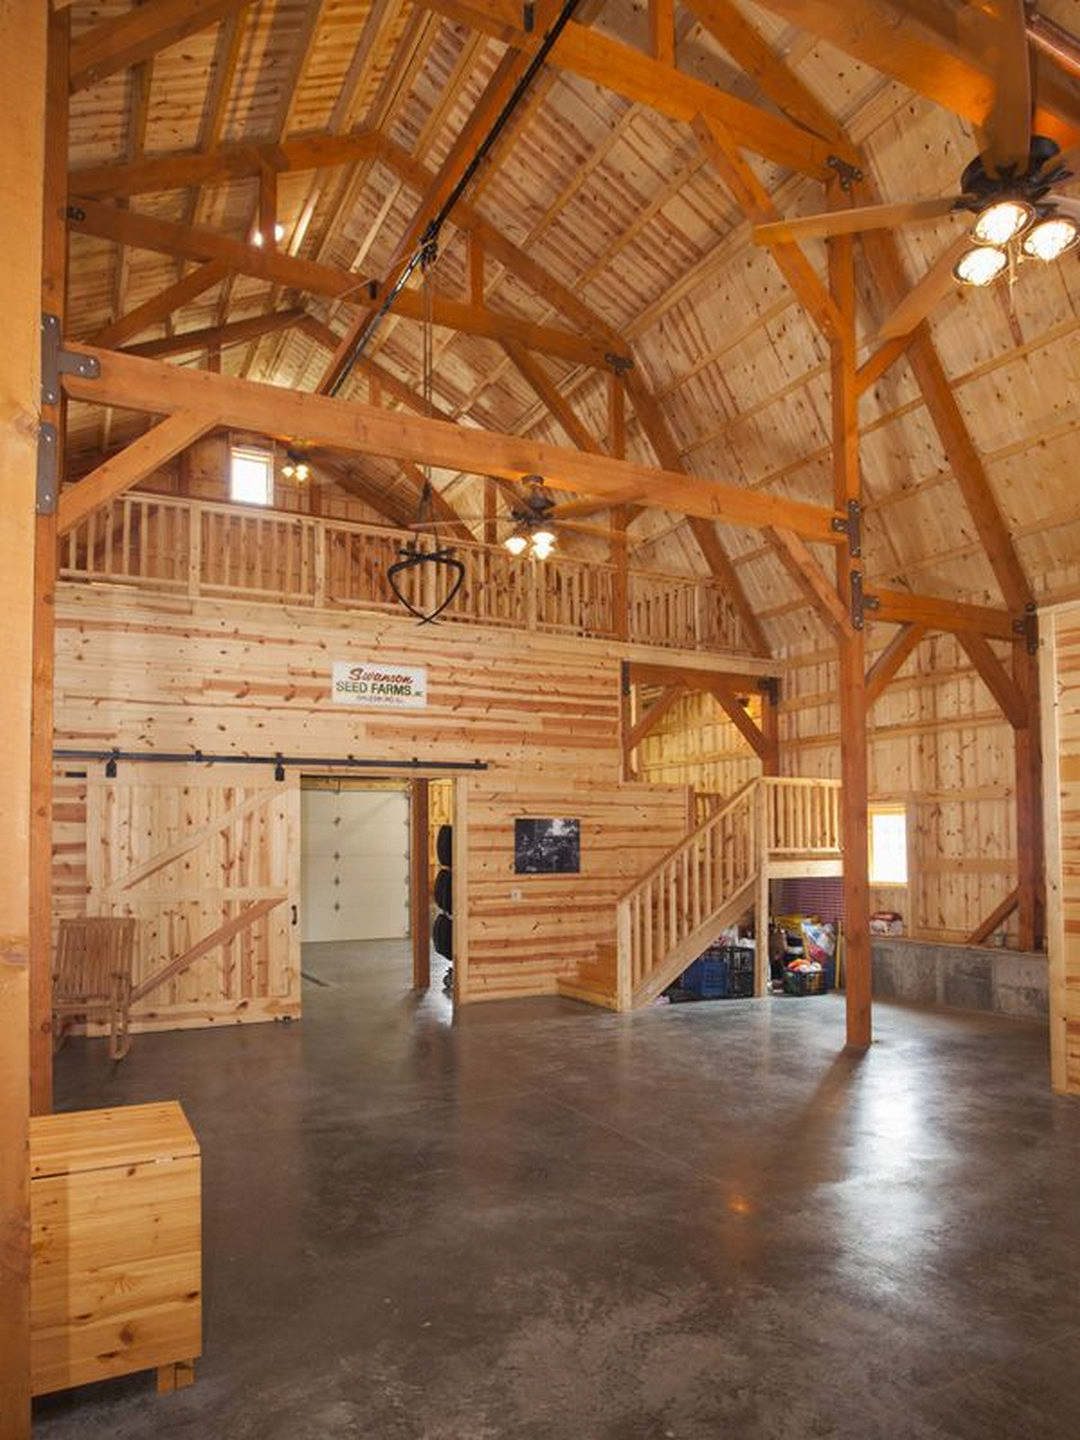 87 barn style interior design ideas barn interiors and for Barn roof plans